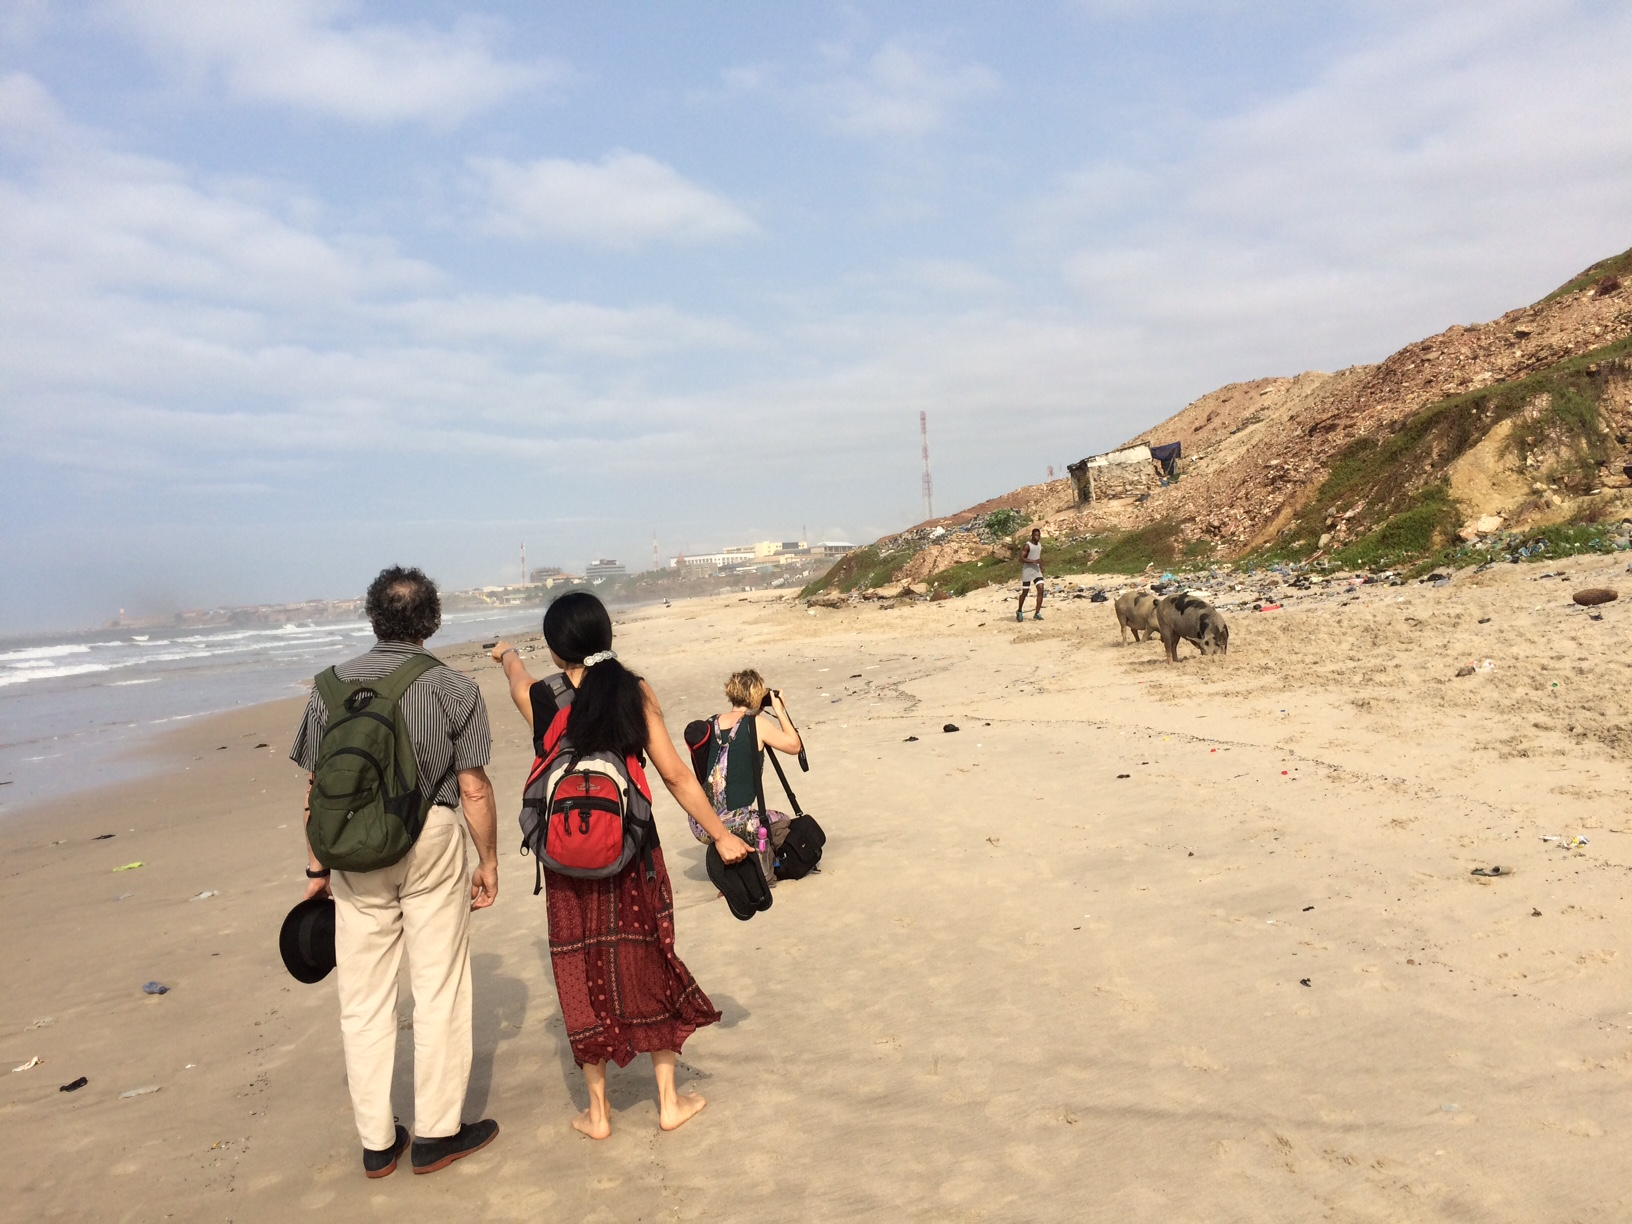 From left: Andy Teirstein, Valerie Narajo, and Cari Ann Shim Sham Photo by Wendy Perron